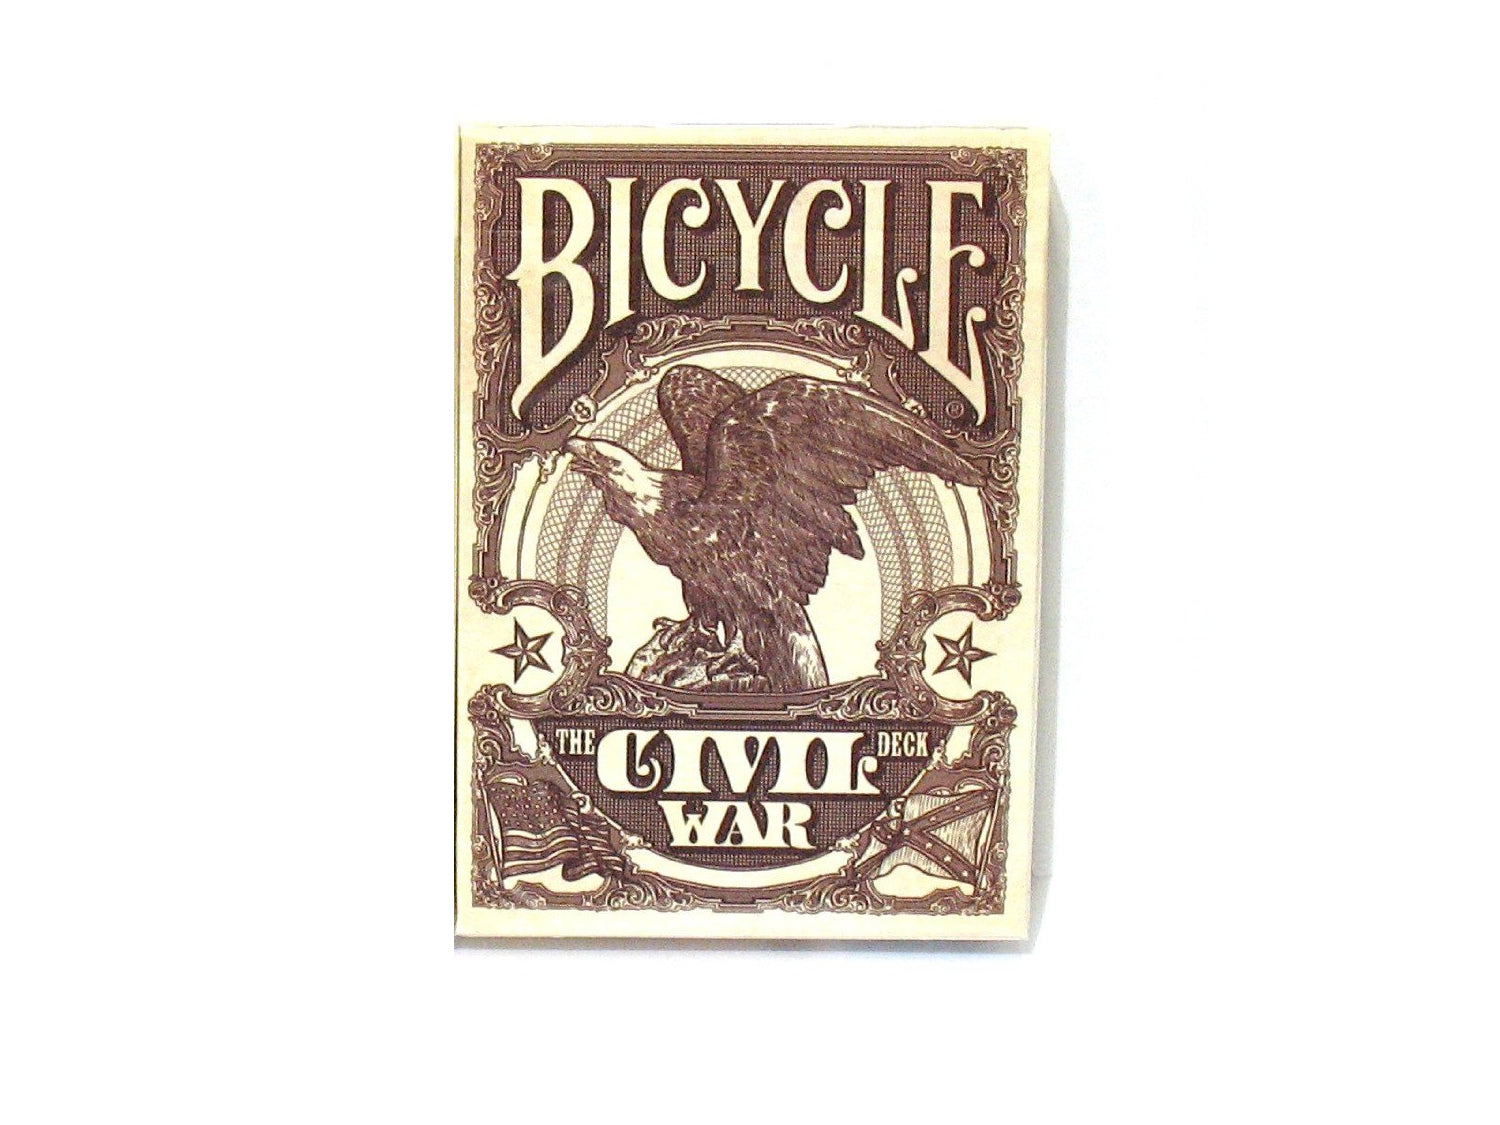 Bicycle Civil War Playing Cards with The Confederacy and Union Icons- 1 Red Deck